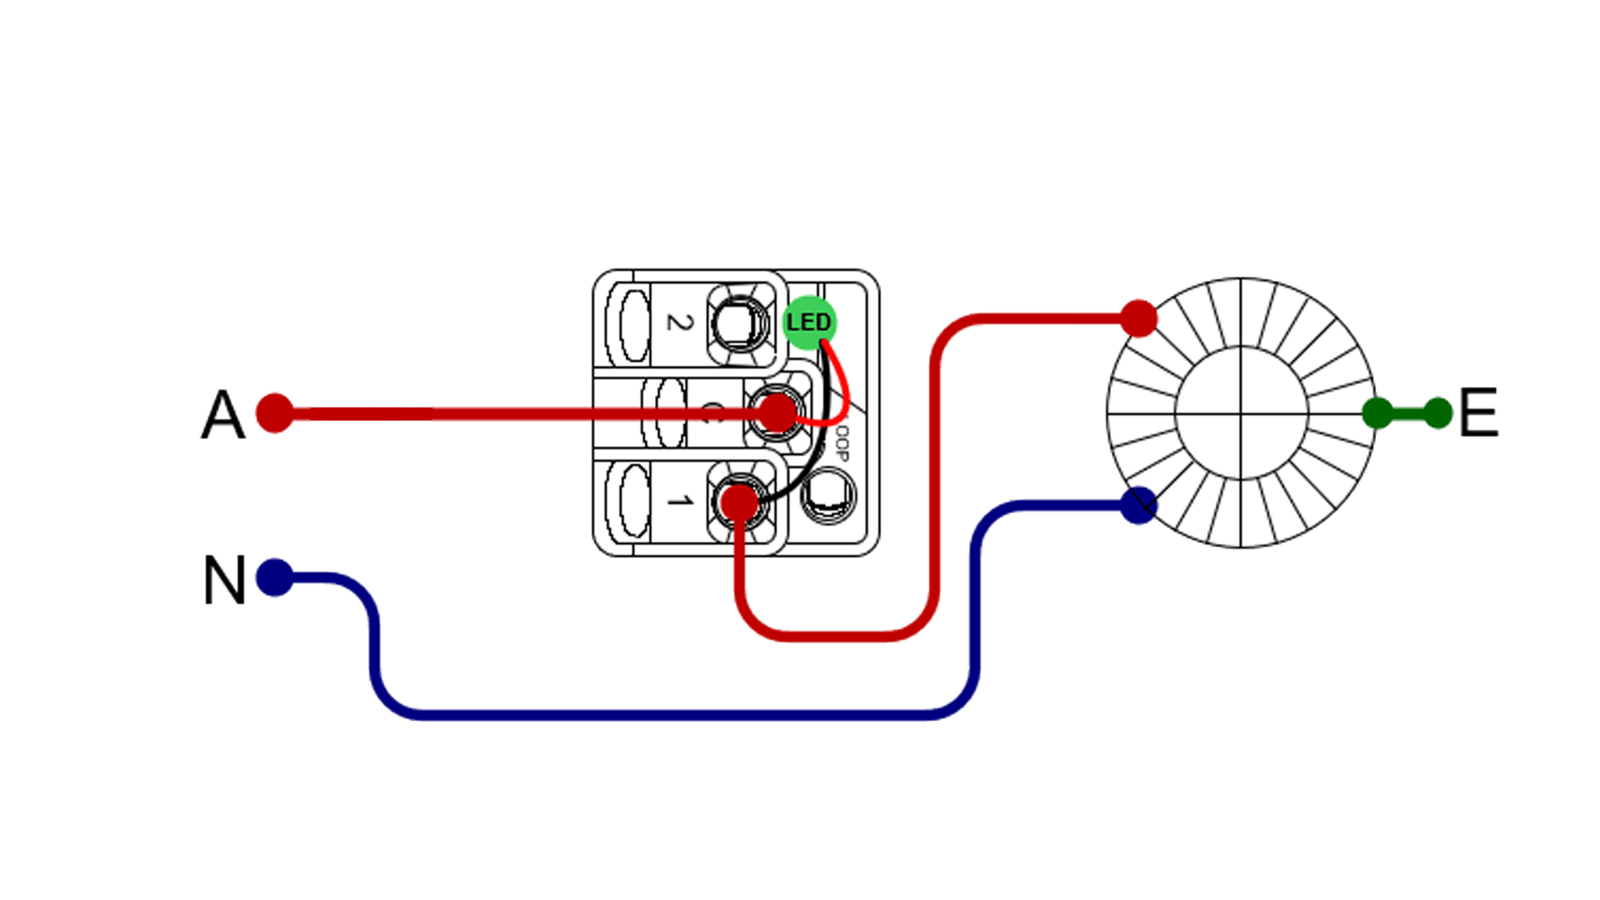 Clipsal Led Dimmer Wiring Diagram